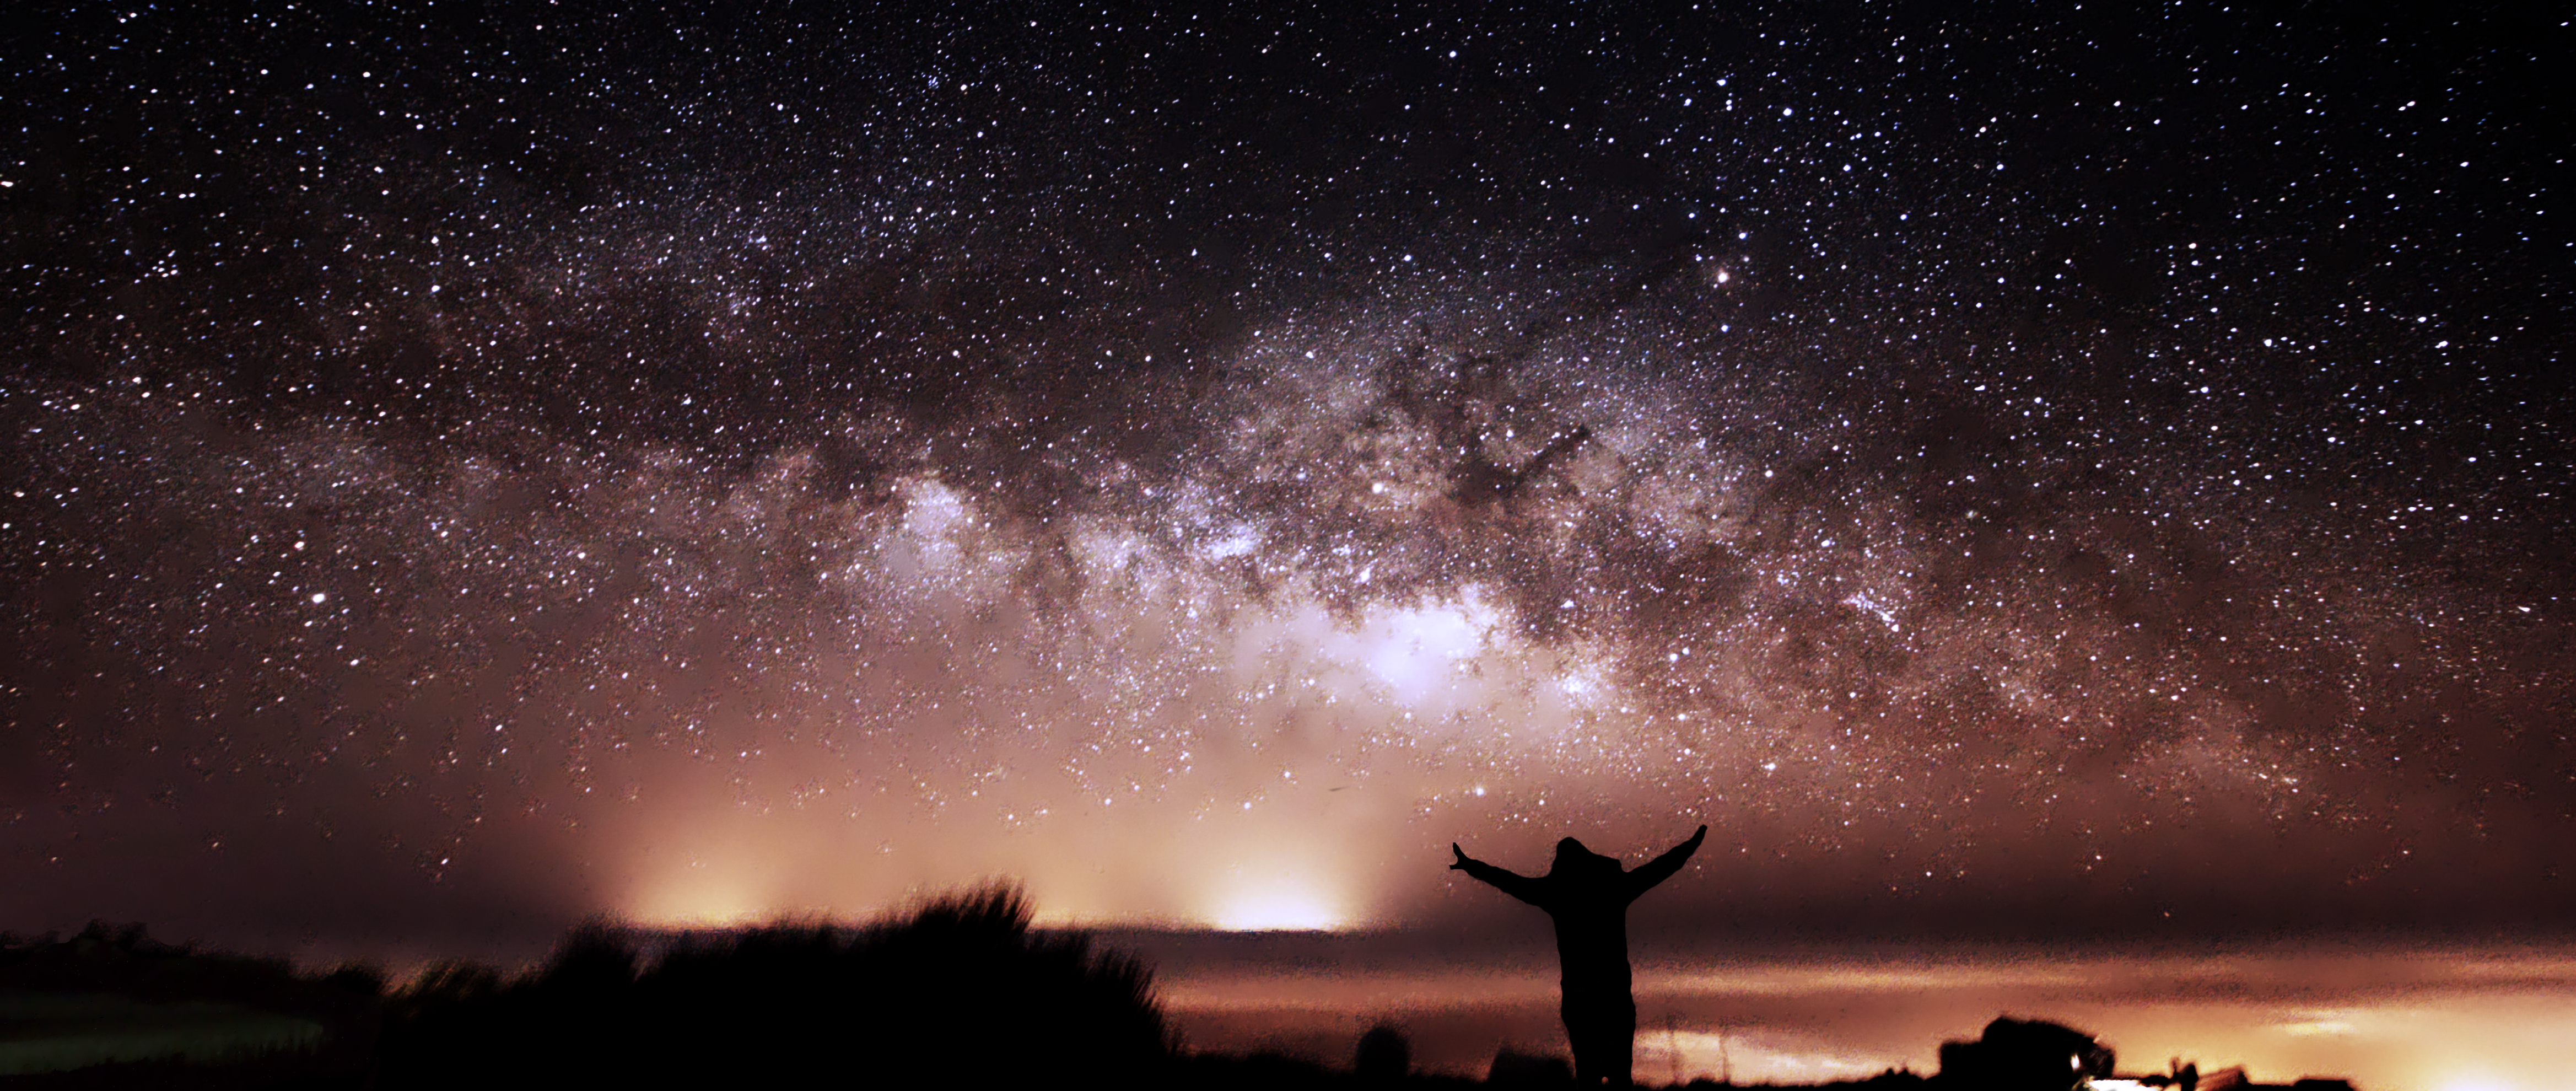 Me and the Milky Way, taken by our expedition leader and astrophotographer Dr Antonio Martin-Carrillo!